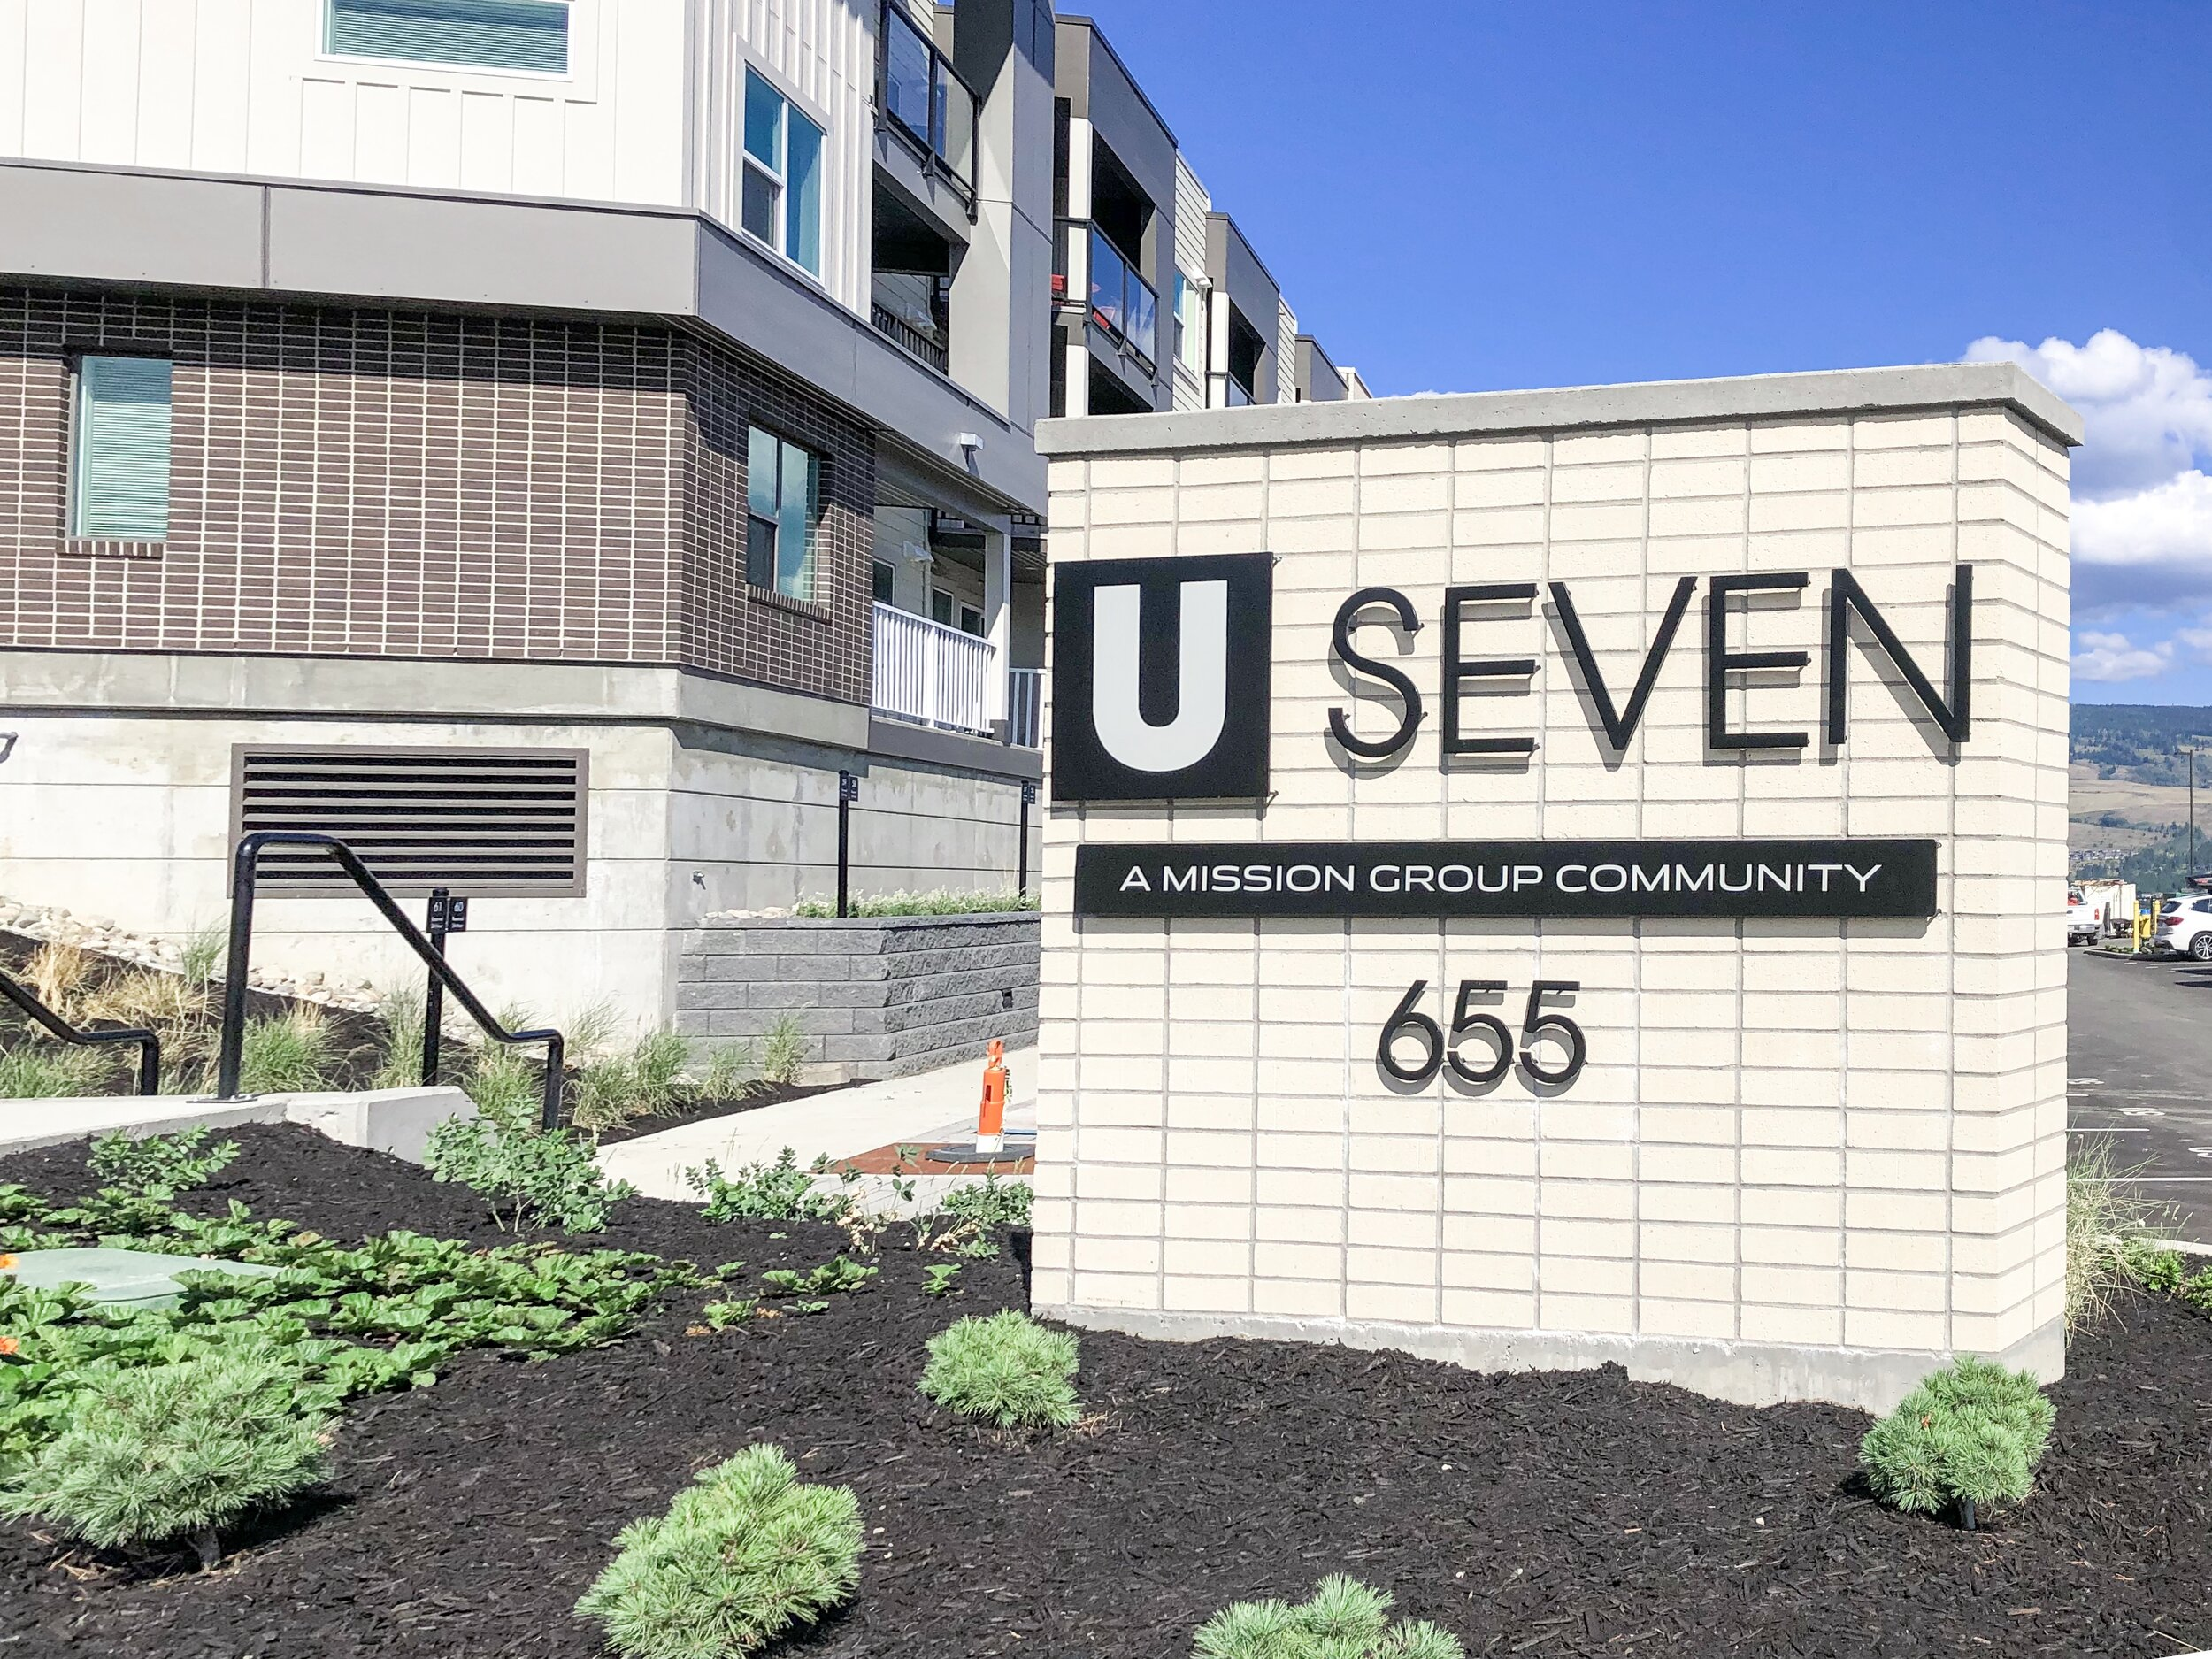 u-seven-ubco-kelowna-investment-property.jpg